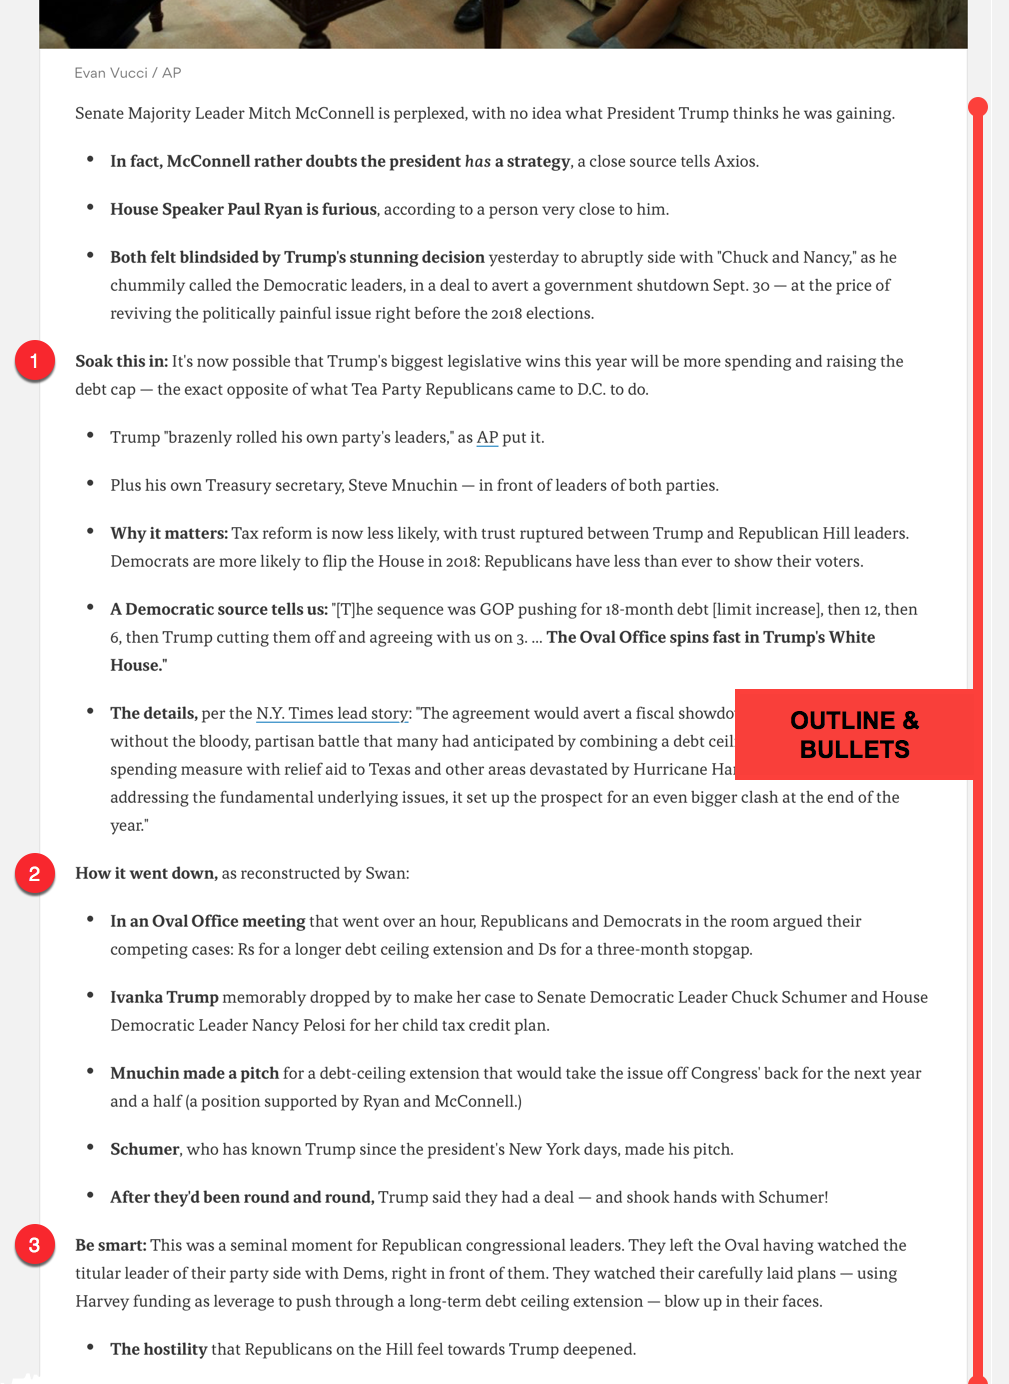 Skimmable Structure - BOLDFACE throughout spotlights key points. BULLET LIST style punches out each claim quickly (traditional news uses a full graf for most of its points). Lightweight OUTLINE chunks the article into 3 core sections.